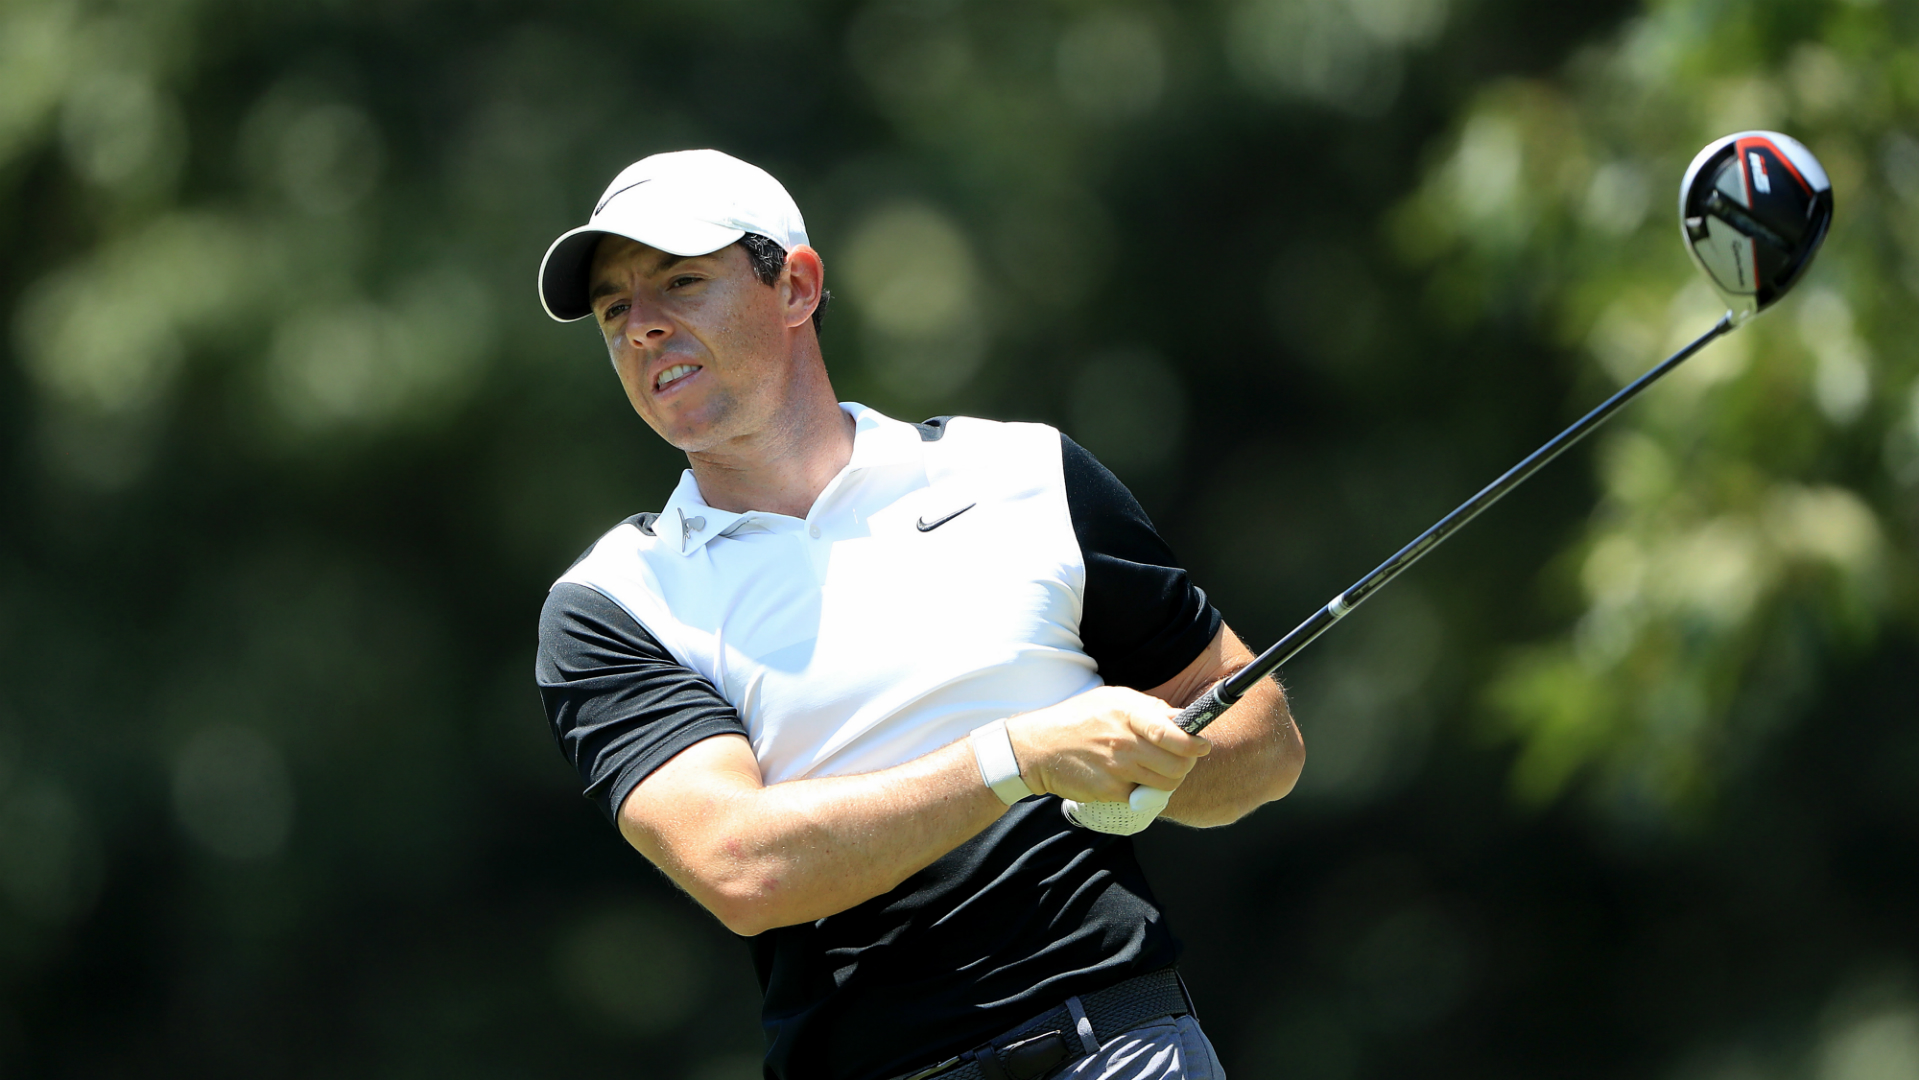 Rory McIlroy tells Shane Lowry: British Open win 'is a life-changer'